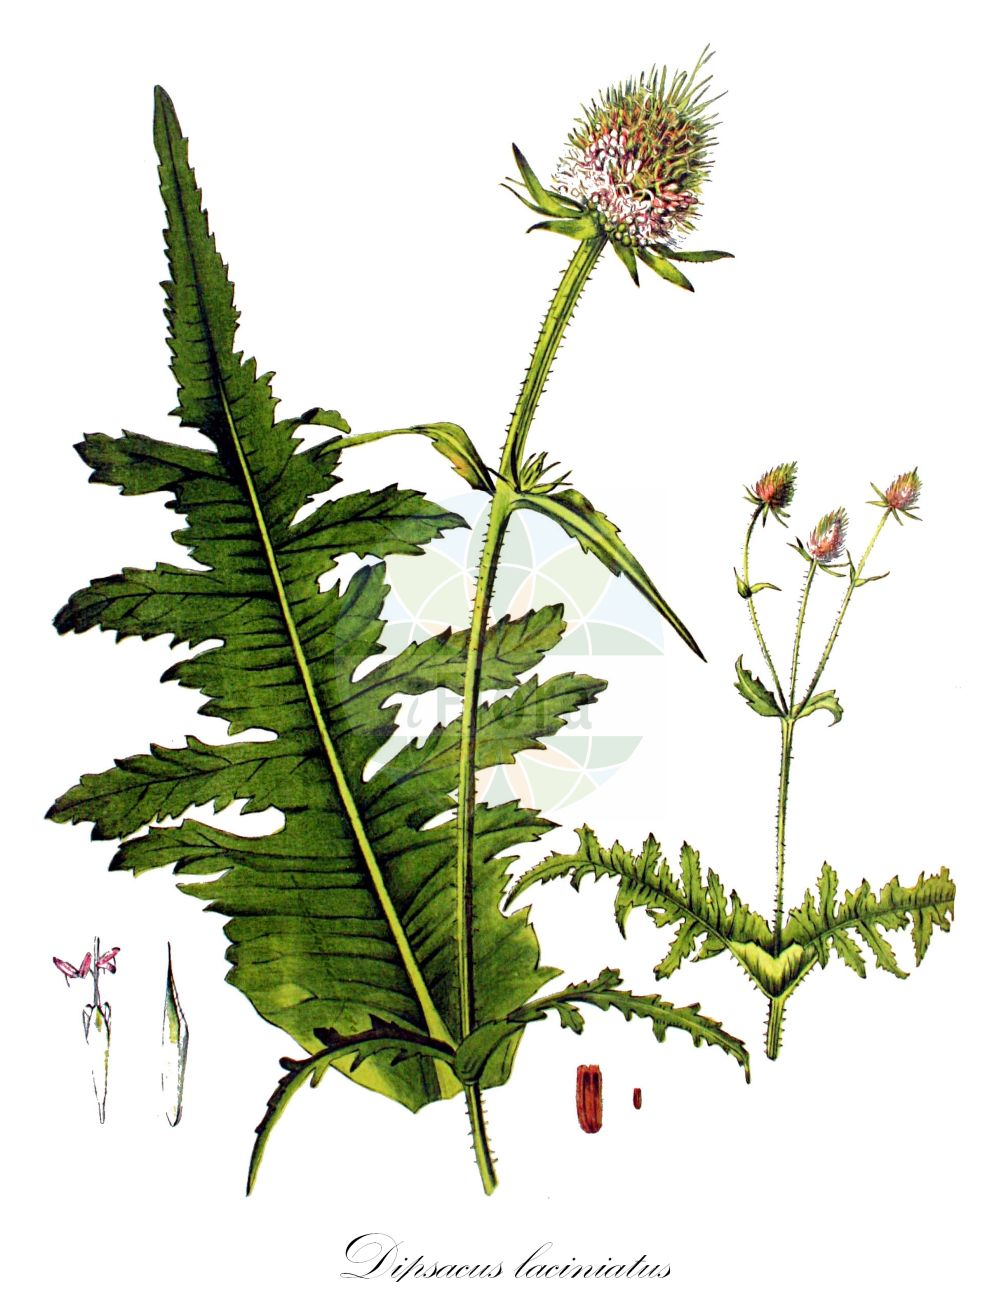 Historische Abbildung von Dipsacus laciniatus (Schlitzblaettrige Karde - Cut-leaved Teasel). Das Bild zeigt Blatt, Bluete, Frucht und Same. ---- Historical Drawing of Dipsacus laciniatus (Schlitzblaettrige Karde - Cut-leaved Teasel).The image is showing leaf, flower, fruit and seed.(Dipsacus laciniatus,Schlitzblaettrige Karde,Cut-leaved Teasel,Cutleaf Teasel,Dipsacus,Karde,Teasel,Caprifoliaceae,Geissblattgewaechse,Honeysuckle family,Blatt,Bluete,Frucht,Same,leaf,flower,fruit,seed,Kops (1800-1934))